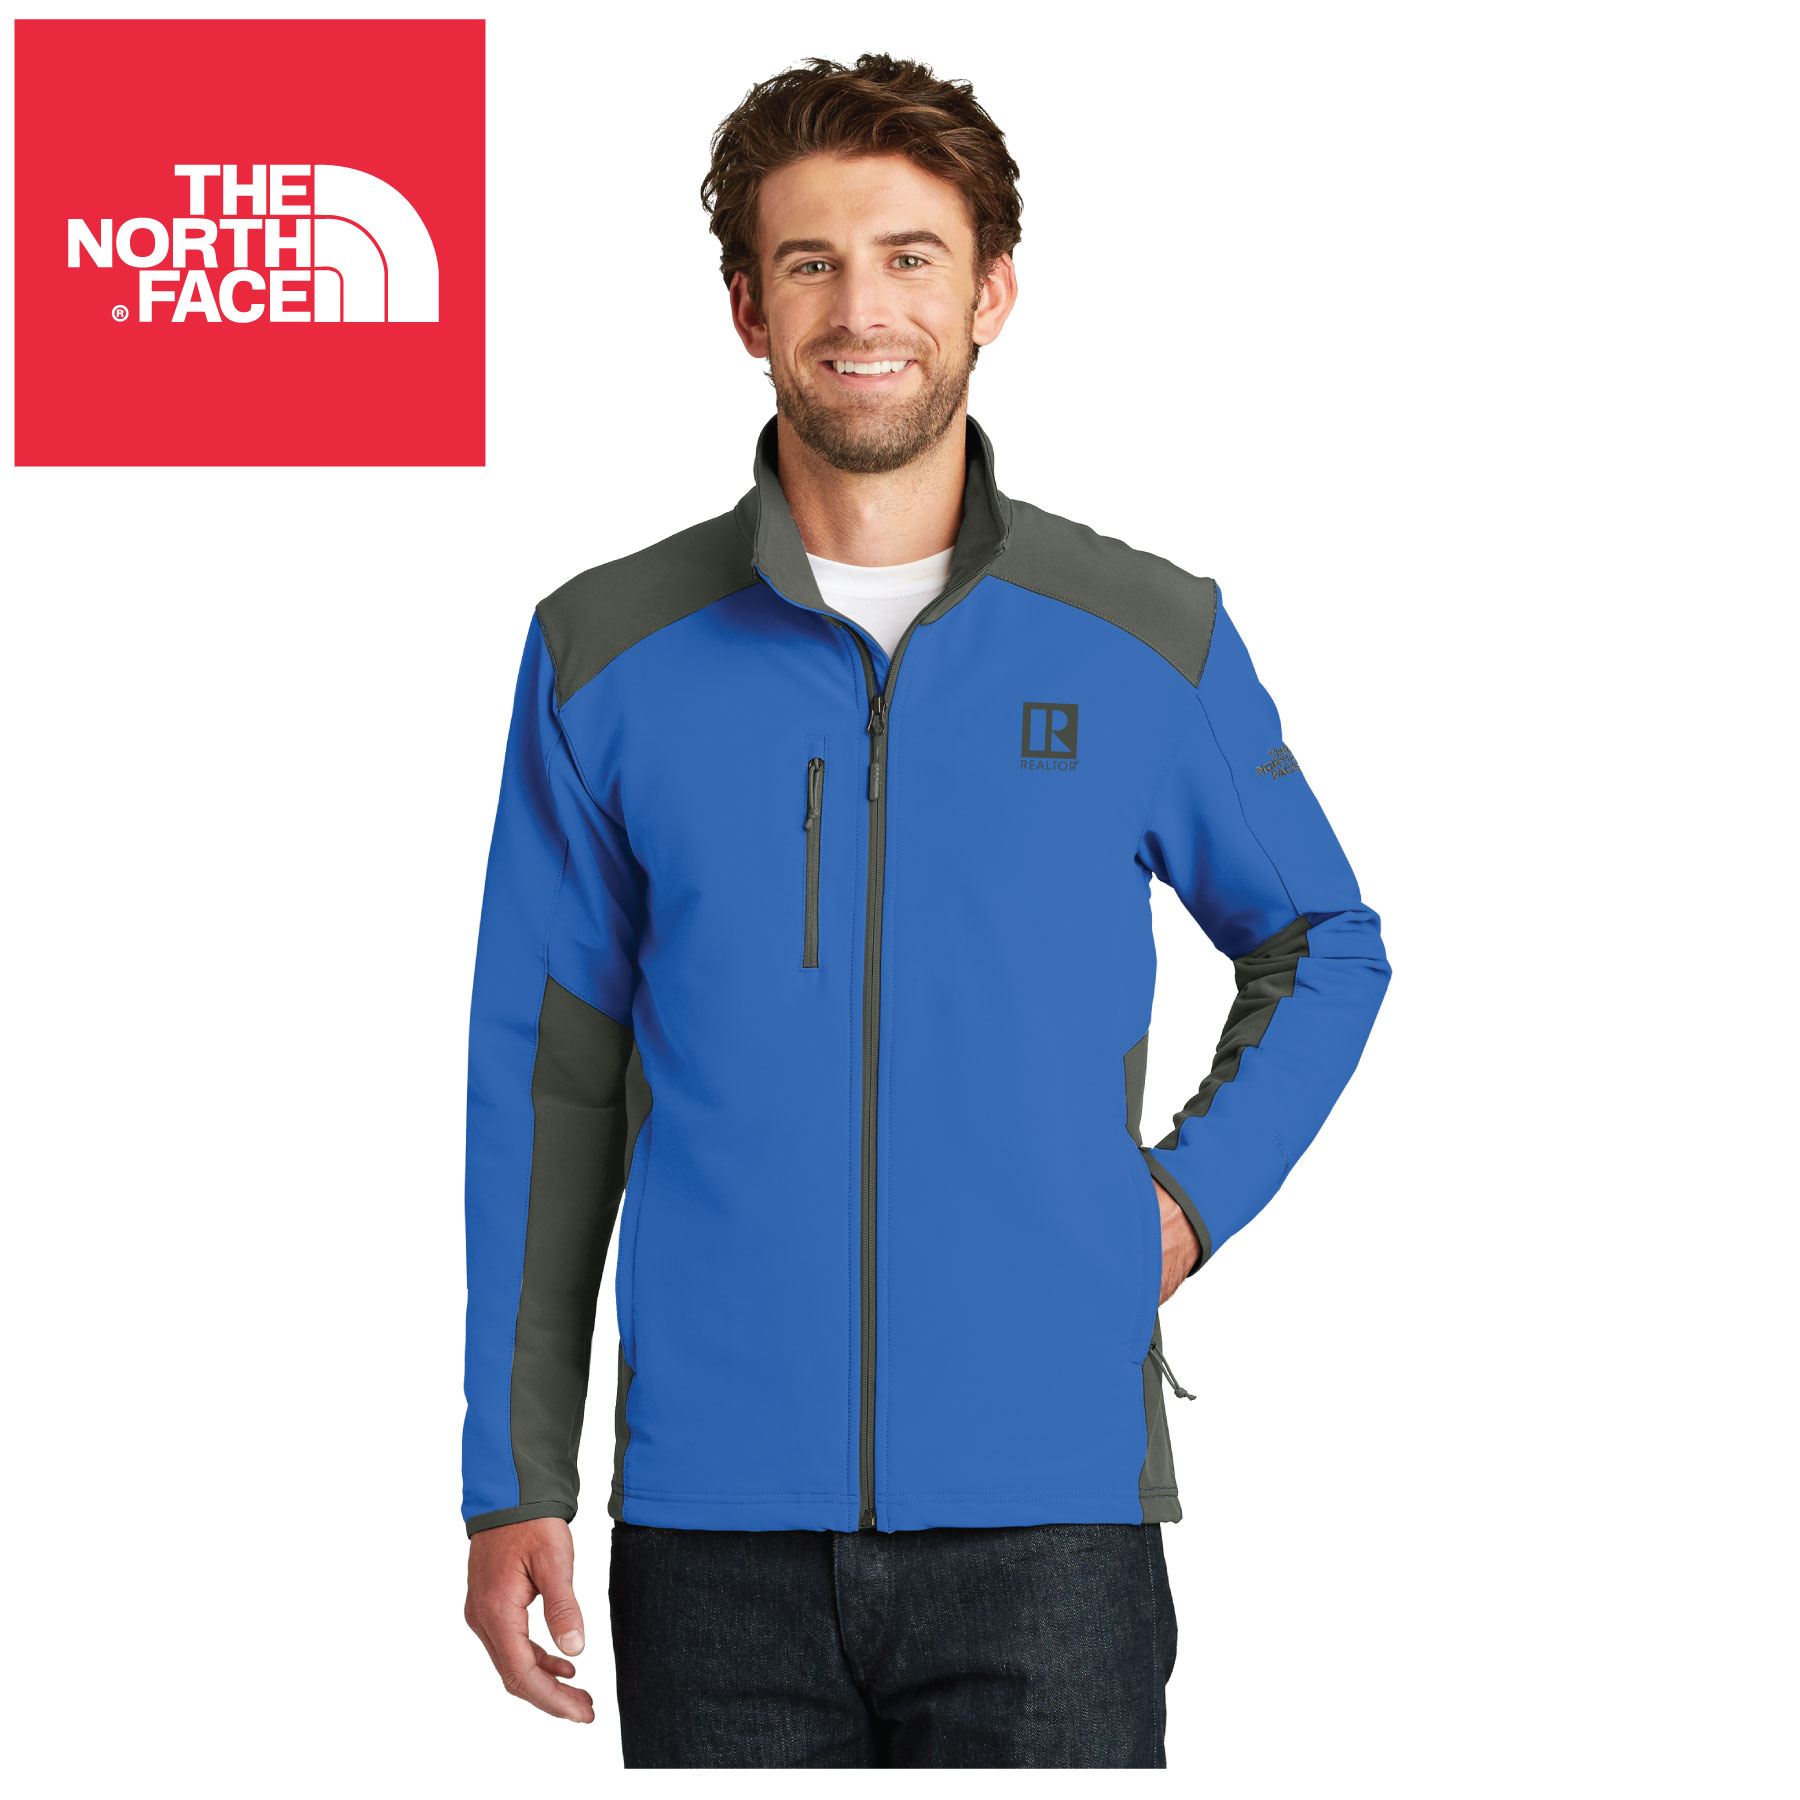 The North Face® Tech Stretch Soft Shell Jacket TheNorthFace,Norths,Jacekts,Zips